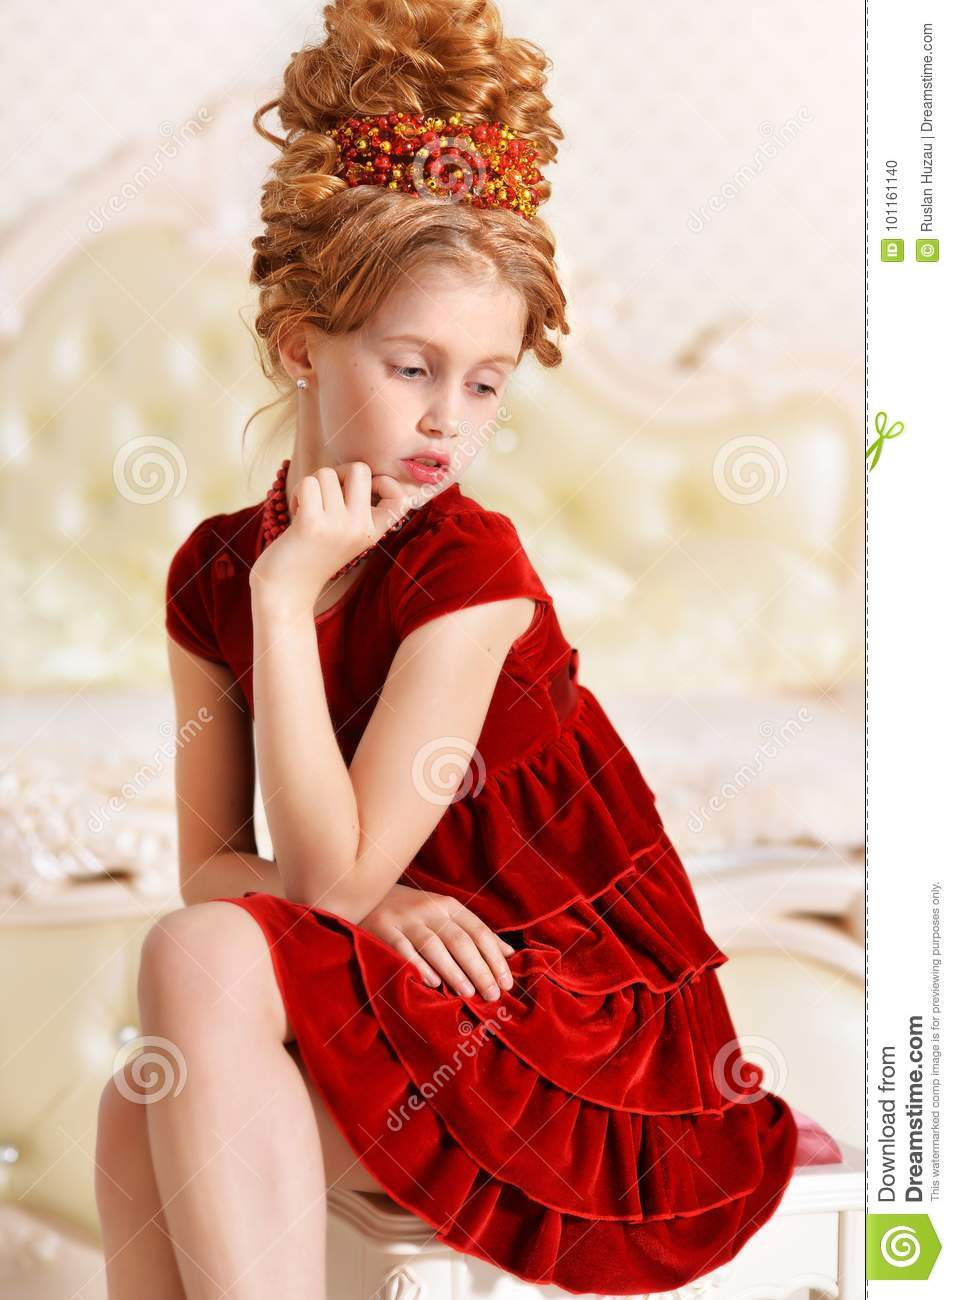 d148d738ff8a Emotional little girl in red velvet dress with retro hairstyle sitting on  beige couch